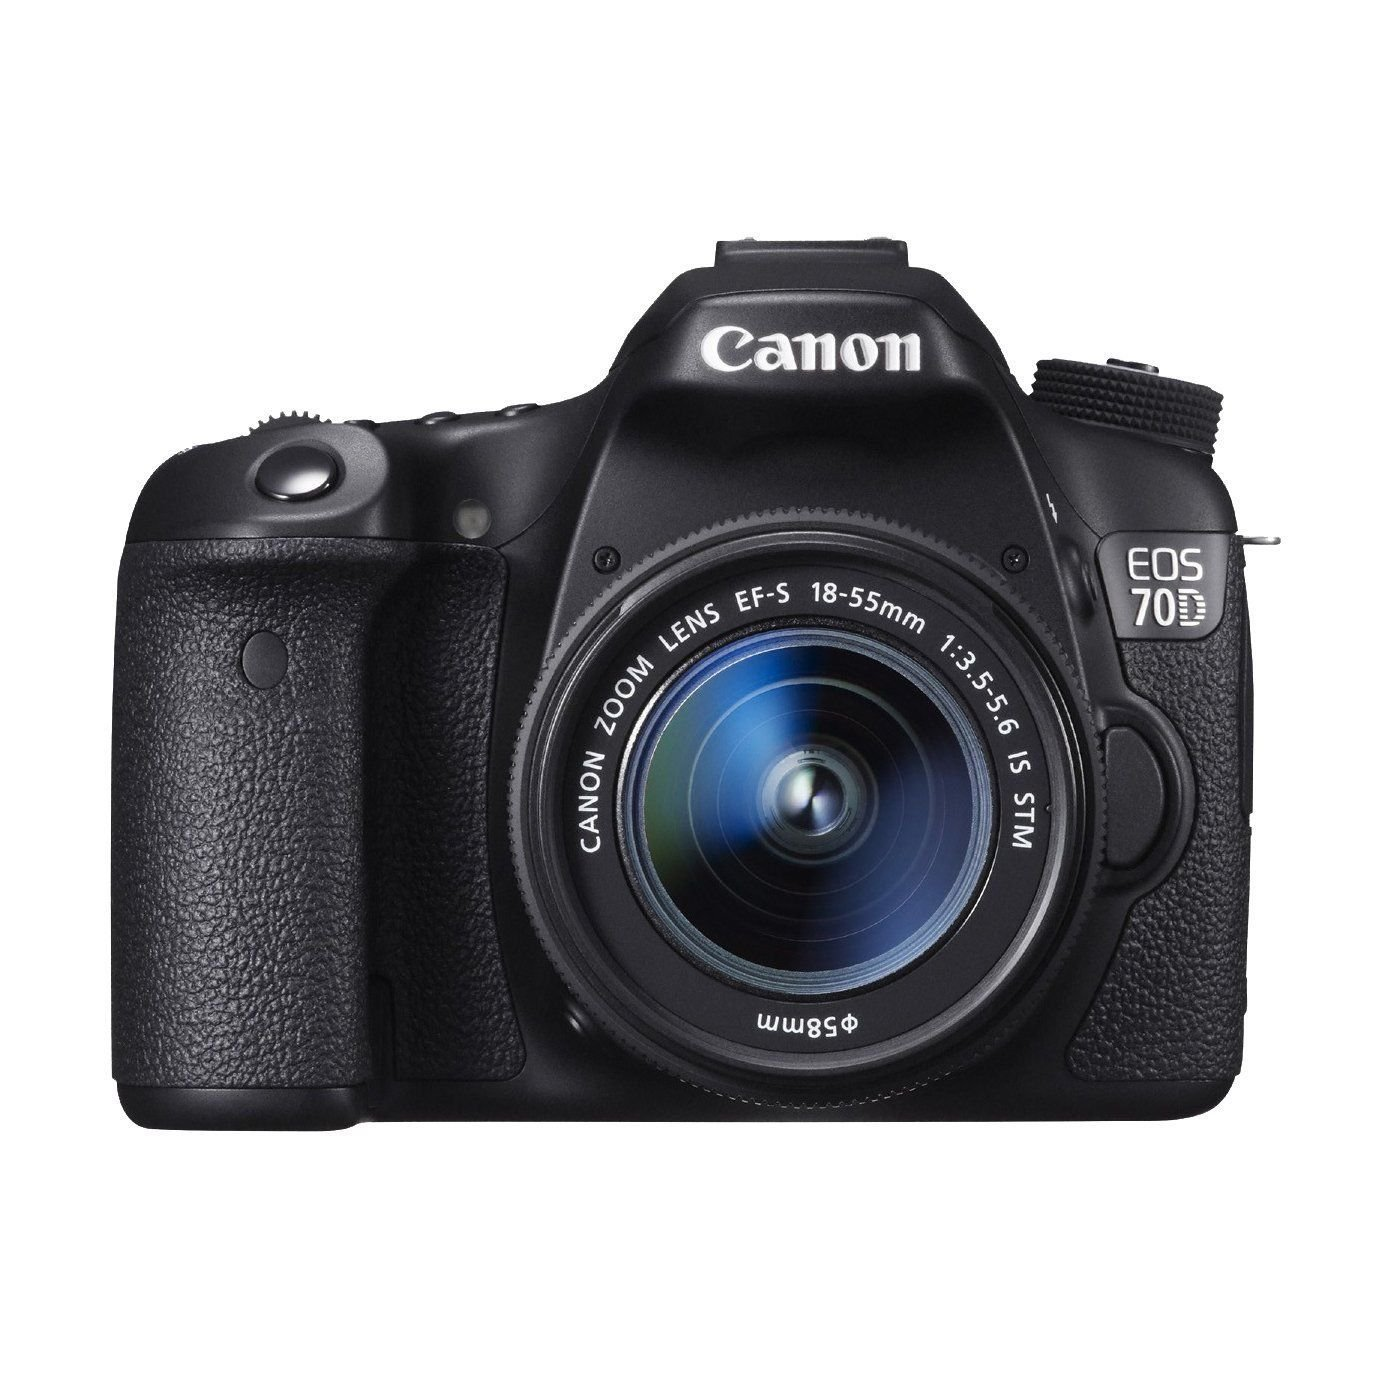 Canon EOS 70D 20.2 MP AF Full HD 1080p DSLR Camera Bundle – 4 Bundles Available